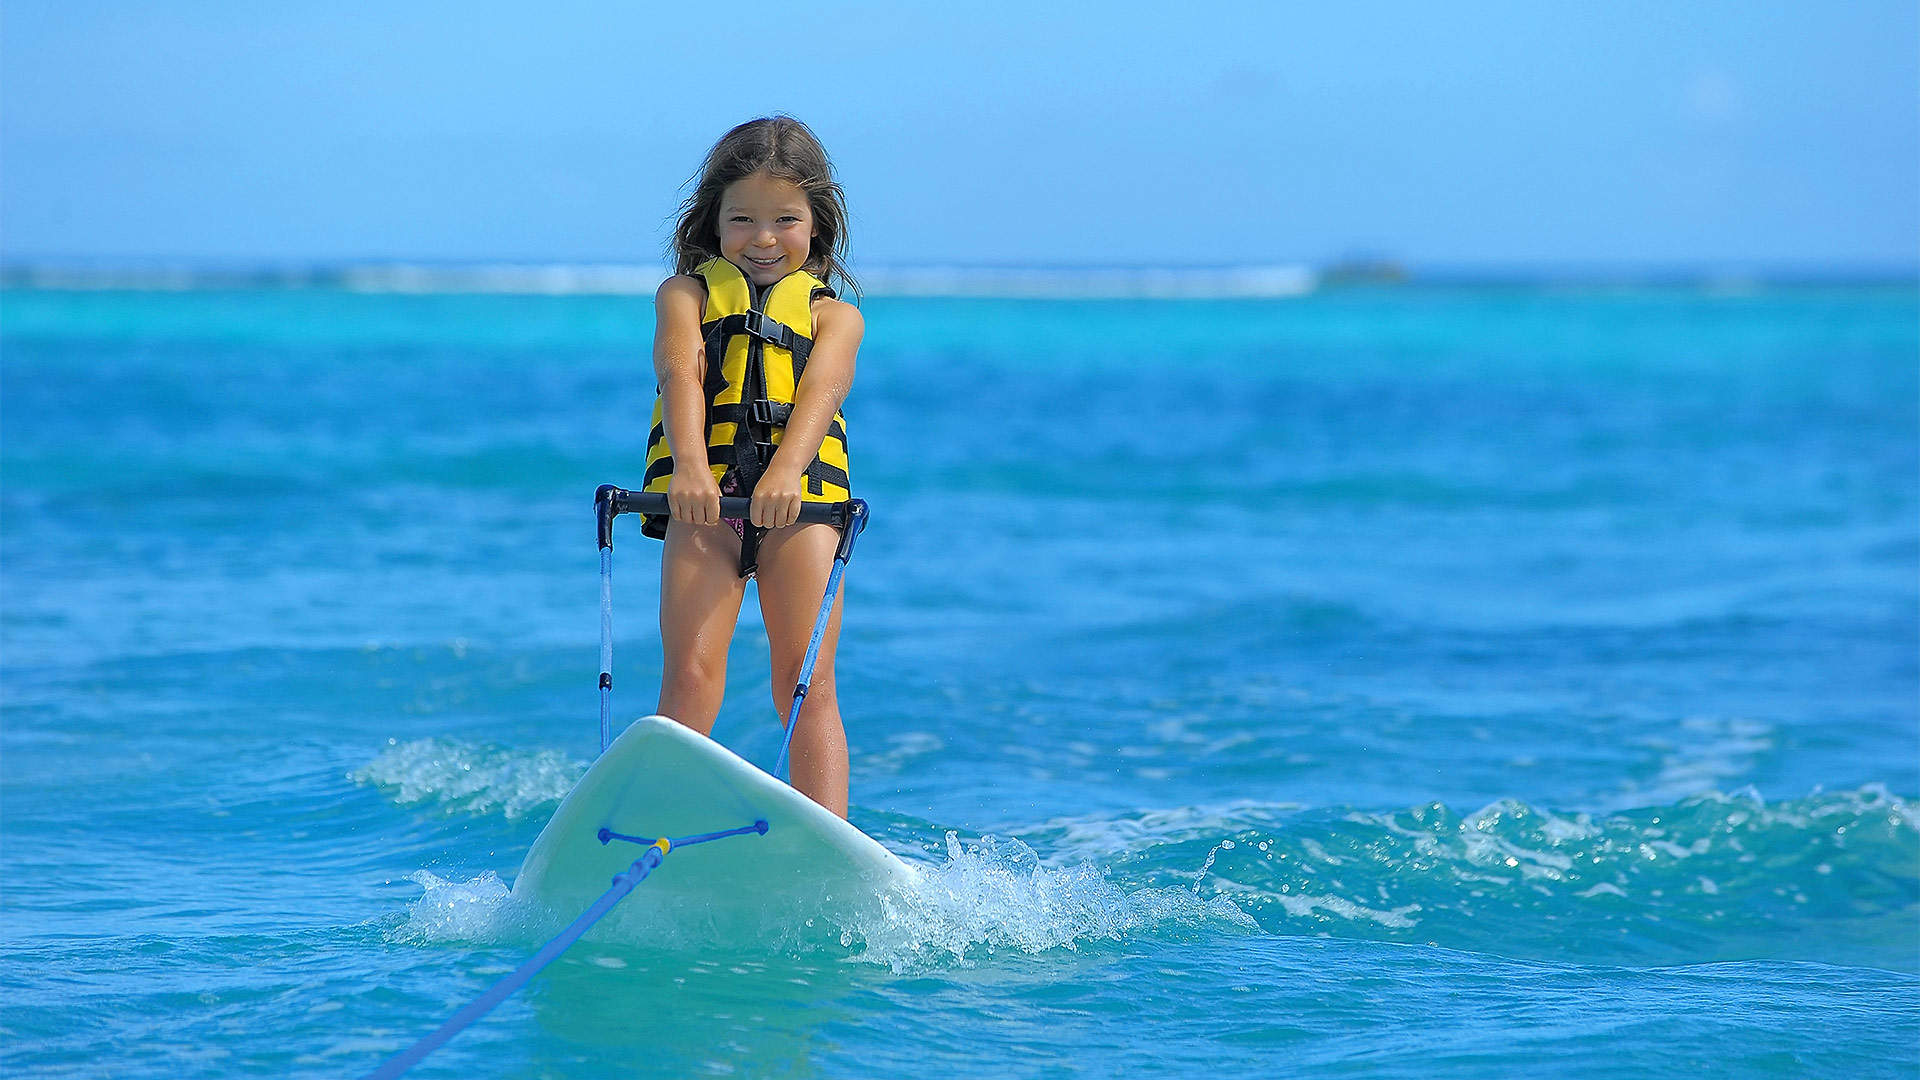 Family - Child Skiing - Water Sports - Royal Palm Mauritius